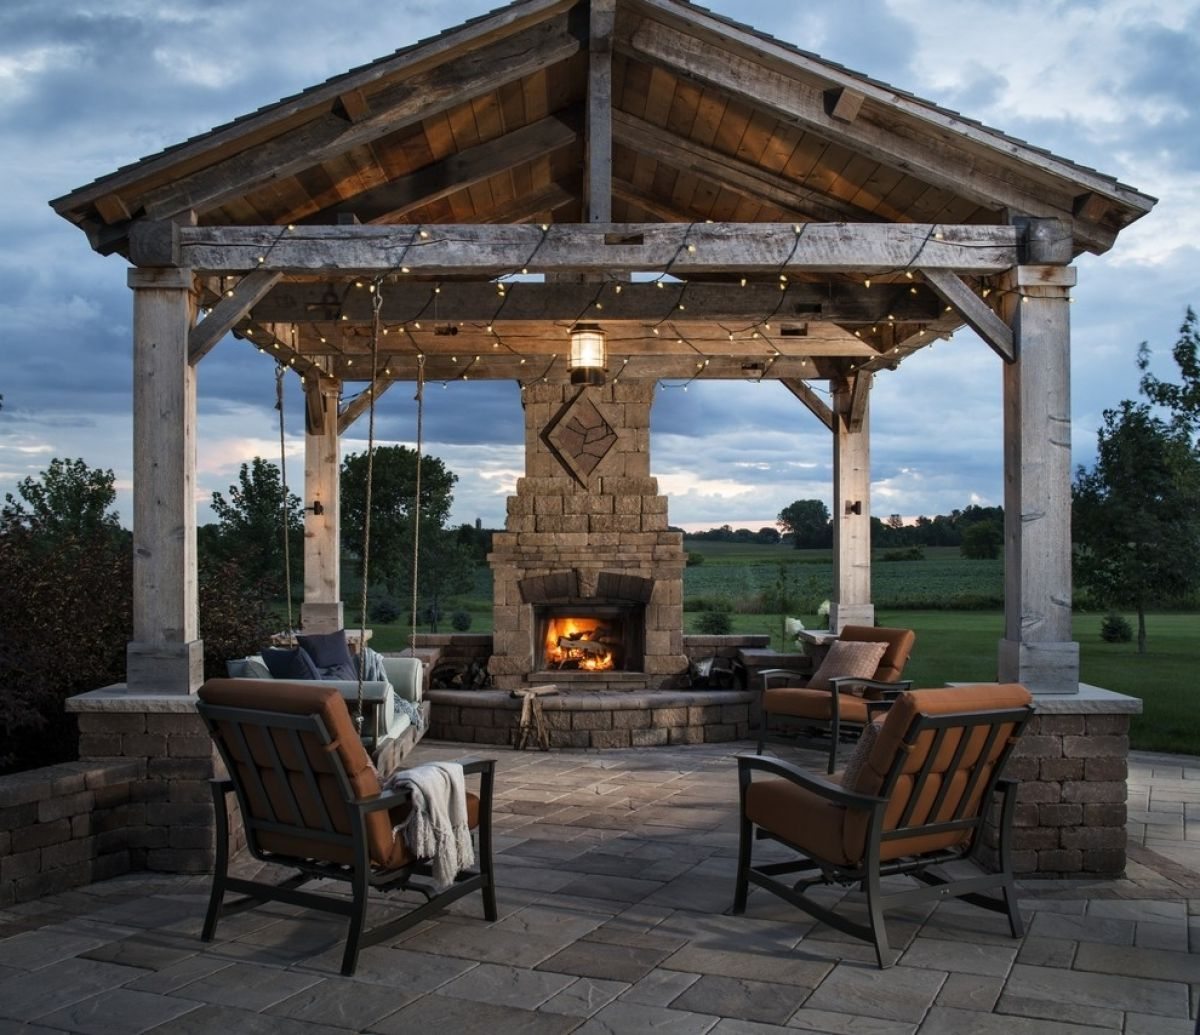 Backyard Gazebo covered gazebos for patios | gazebo ideas | outdoors in 2018